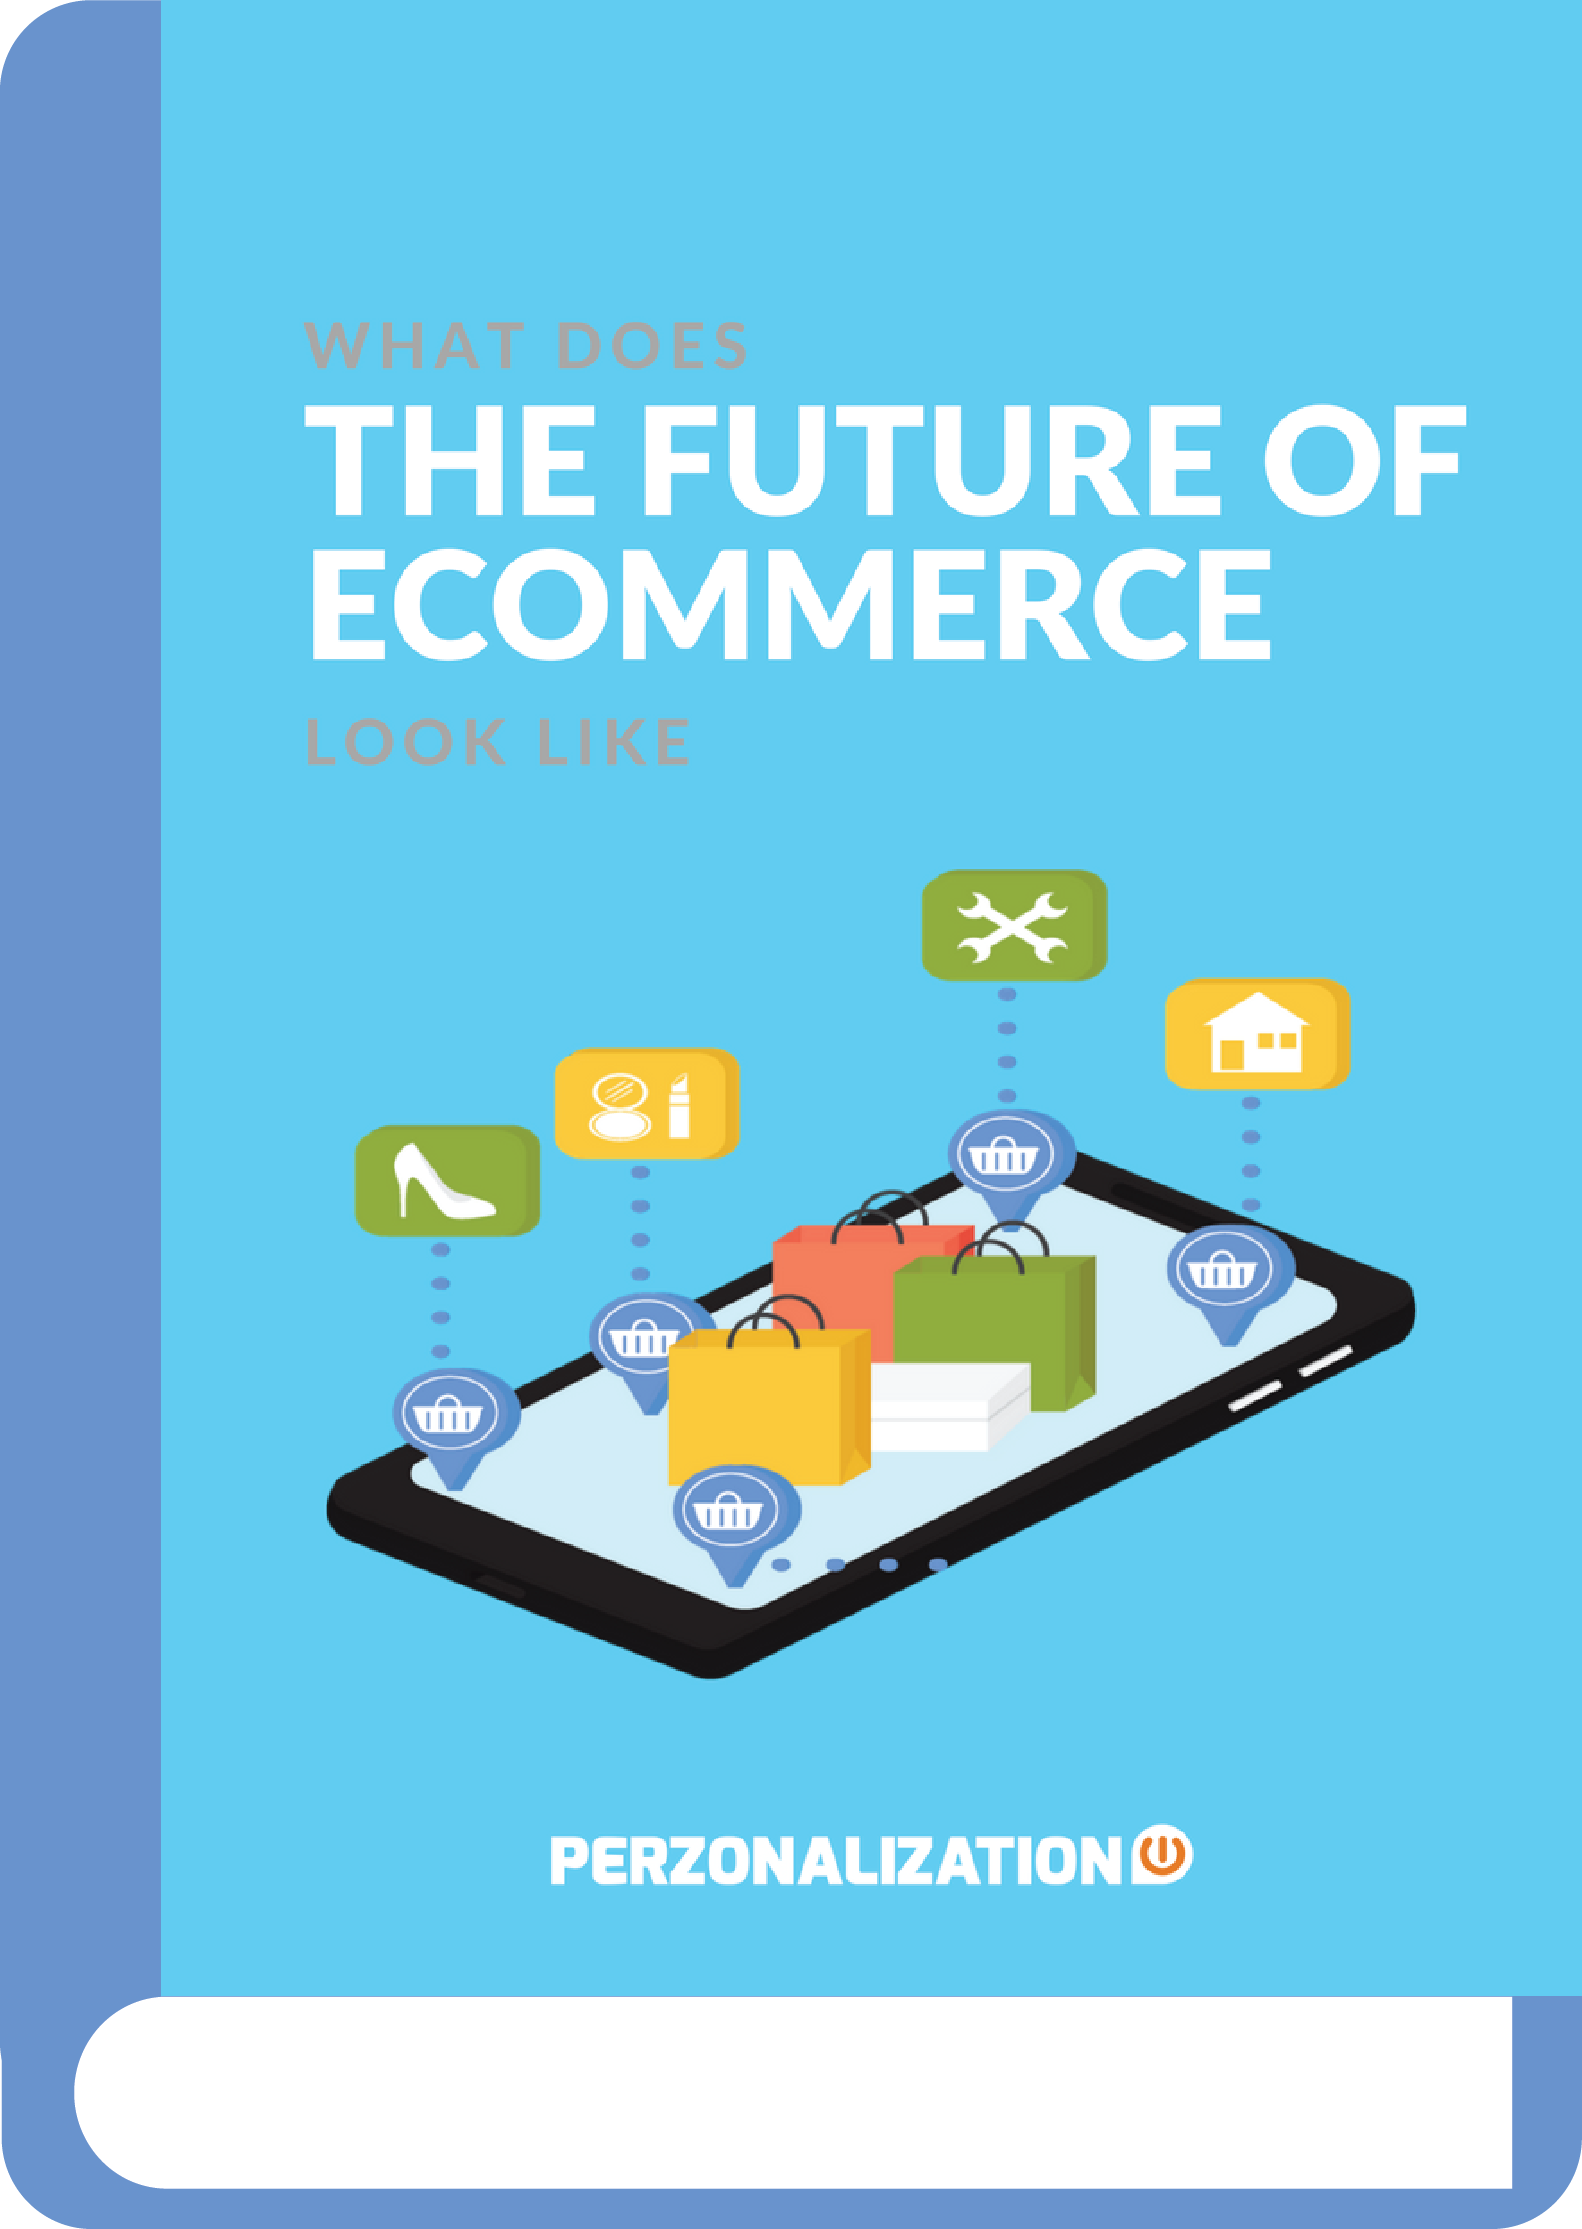 What is the future of eCommerce; or have we reached a point of saturation? The answer is NO. The reason is simple and can be summarized in one argument.